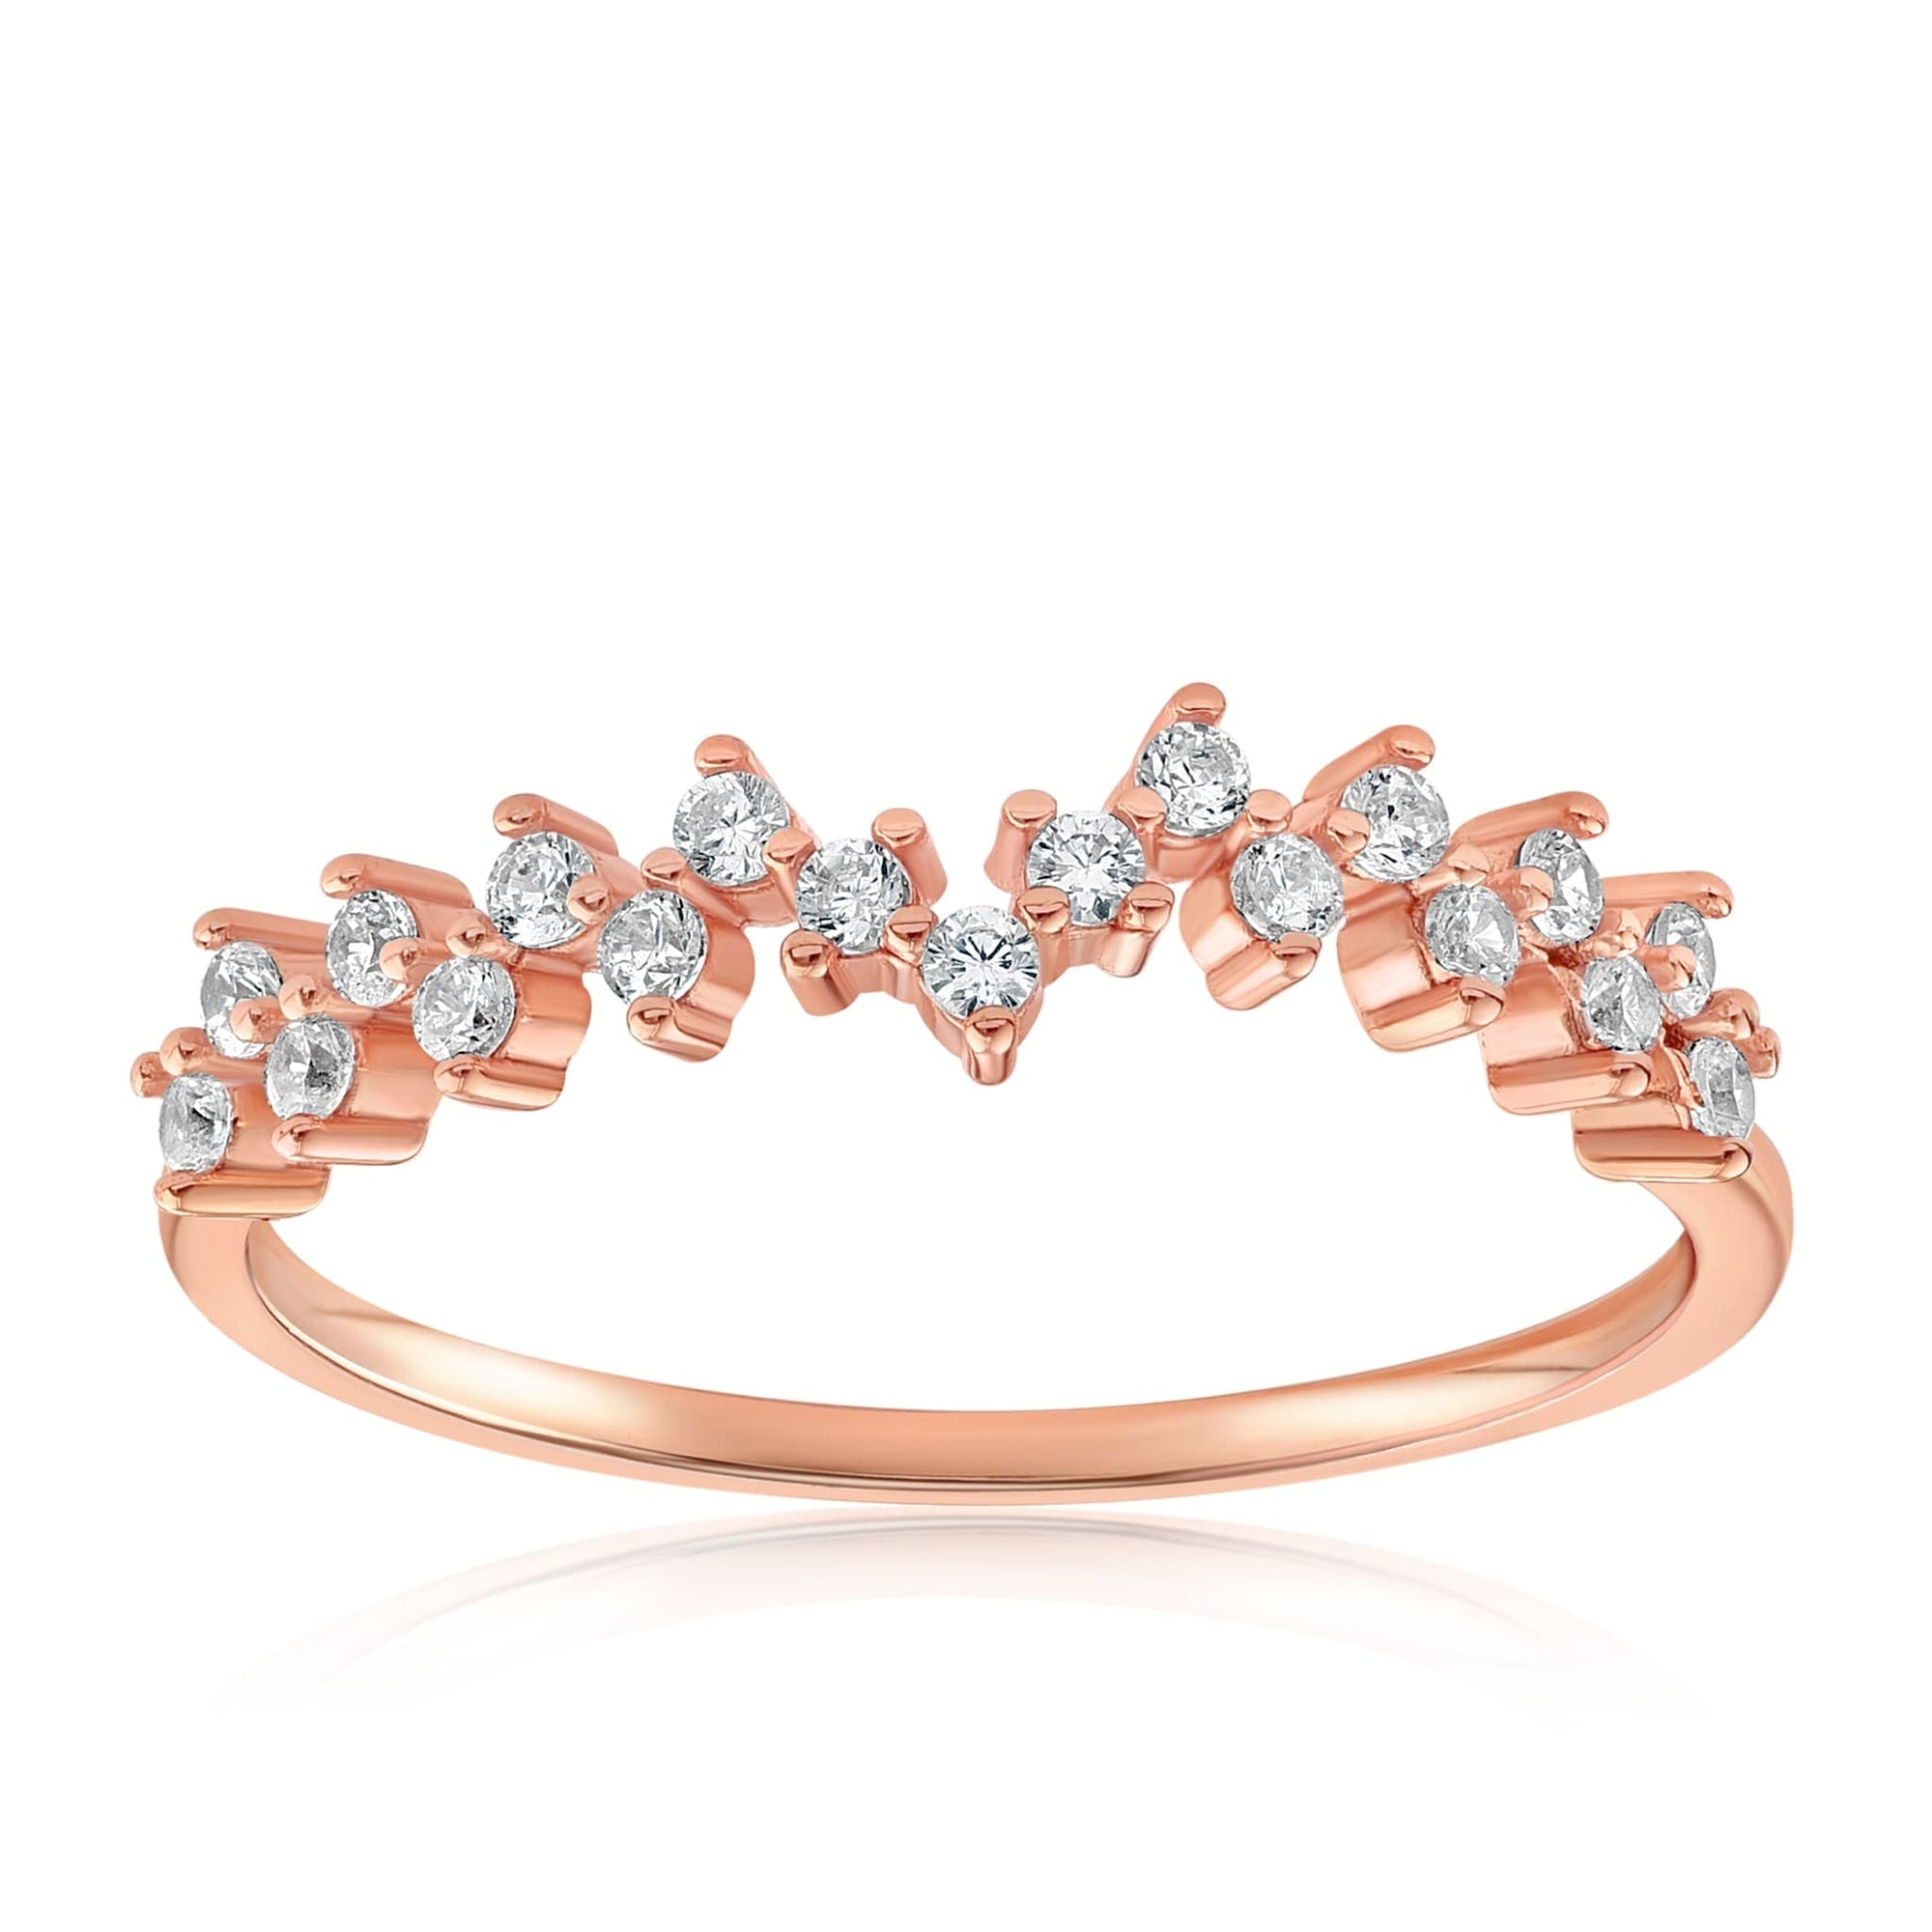 Esther Petite Cluster Ring - Front View Facing Up - 18K Rose Gold Vermeil